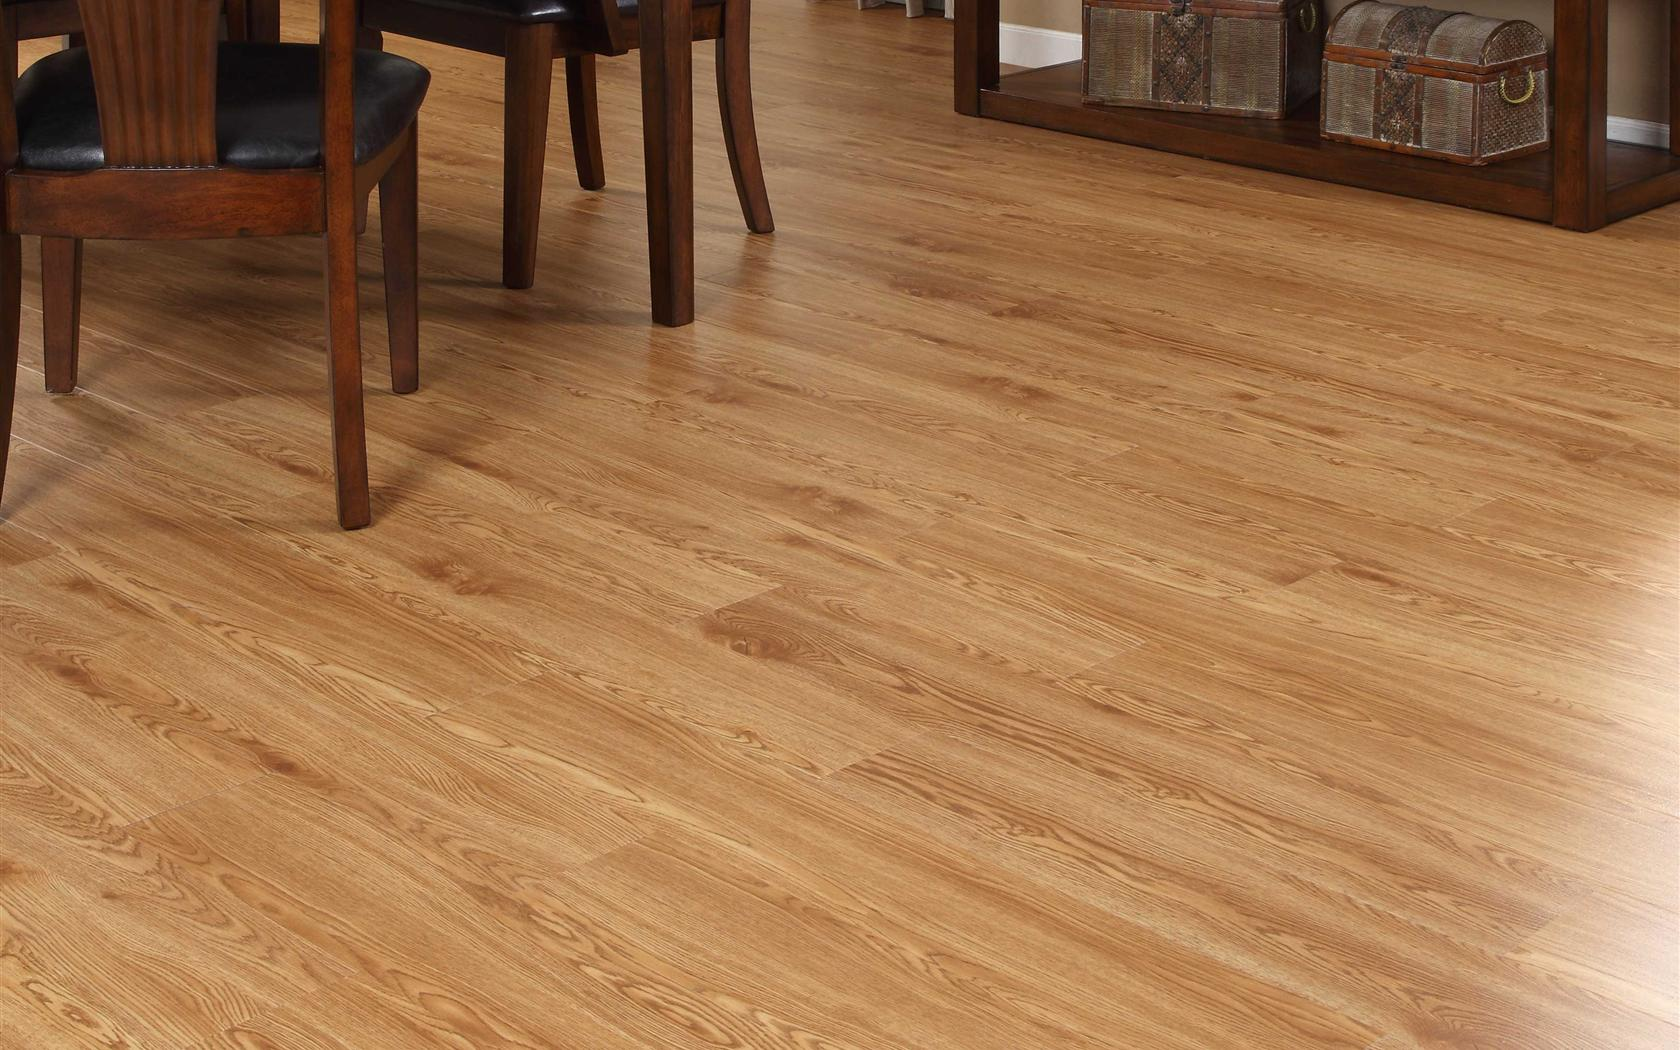 Freefit Lvt Standard Red Oak 6 Quot X 36 Quot Luxury Vinyl Plank Ff104